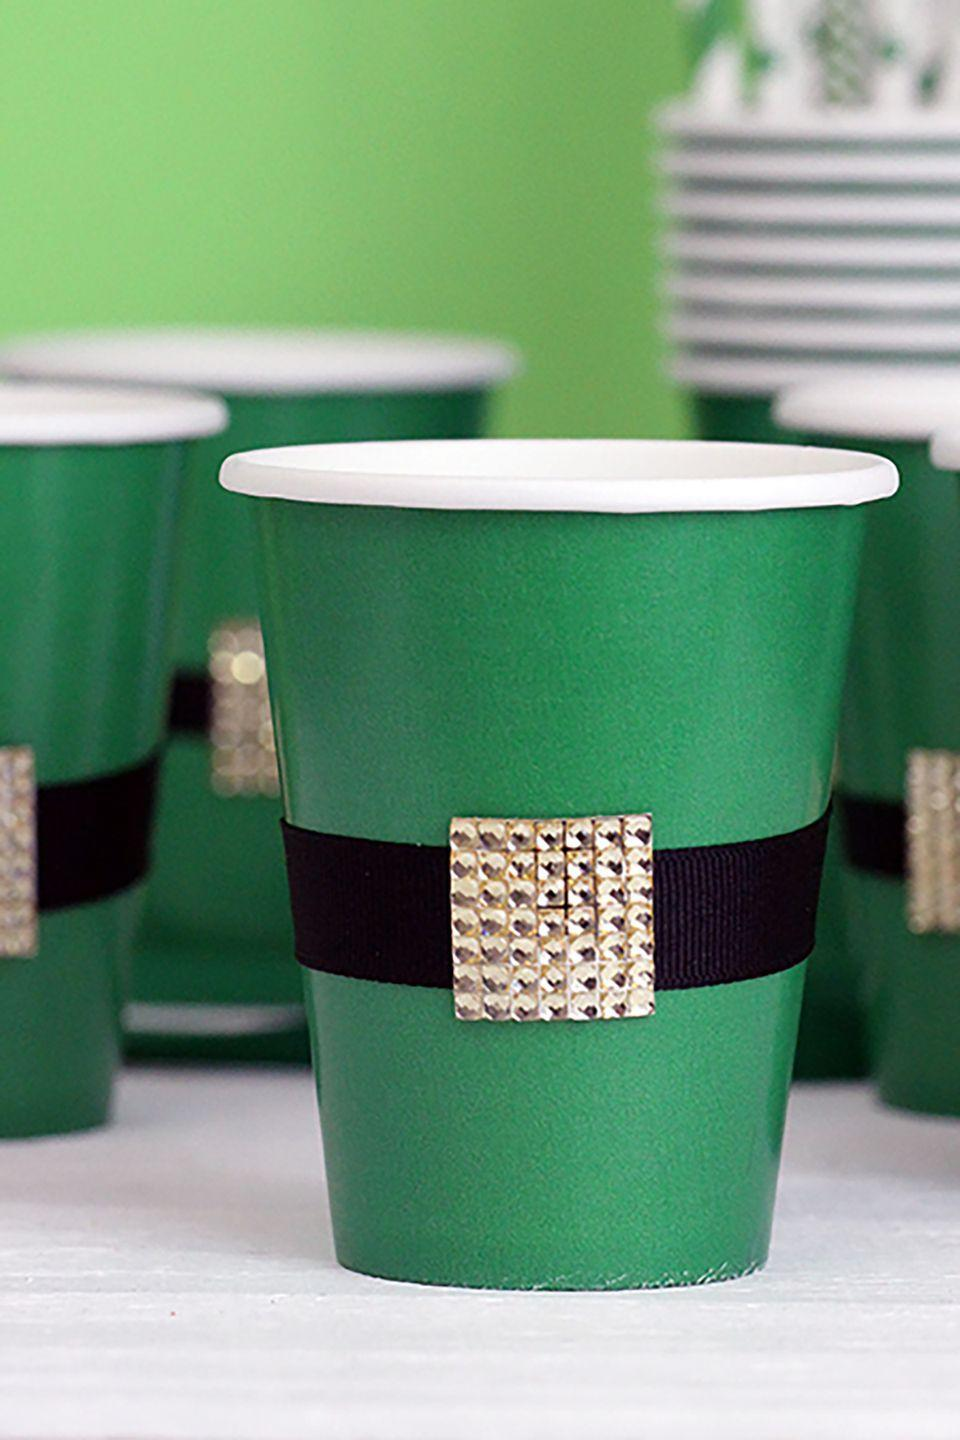 """<p>Forget red solo cups, and go for these spirited cups instead.</p><p><strong>Get the tutorial at <a href=""""http://cutefetti.com/2015/03/diy-leprechaun-belt-cups.html"""" rel=""""nofollow noopener"""" target=""""_blank"""" data-ylk=""""slk:Cutefetti"""" class=""""link rapid-noclick-resp"""">Cutefetti</a>. </strong></p><p><a class=""""link rapid-noclick-resp"""" href=""""https://www.amazon.com/SparkSettings-Disposable-Drinking-Beverages-Perfect/dp/B07JN6ZZ2F/ref=sr_1_1_sspa?tag=syn-yahoo-20&ascsubtag=%5Bartid%7C10050.g.4036%5Bsrc%7Cyahoo-us"""" rel=""""nofollow noopener"""" target=""""_blank"""" data-ylk=""""slk:SHOP PAPER CUPS"""">SHOP PAPER CUPS</a></p>"""